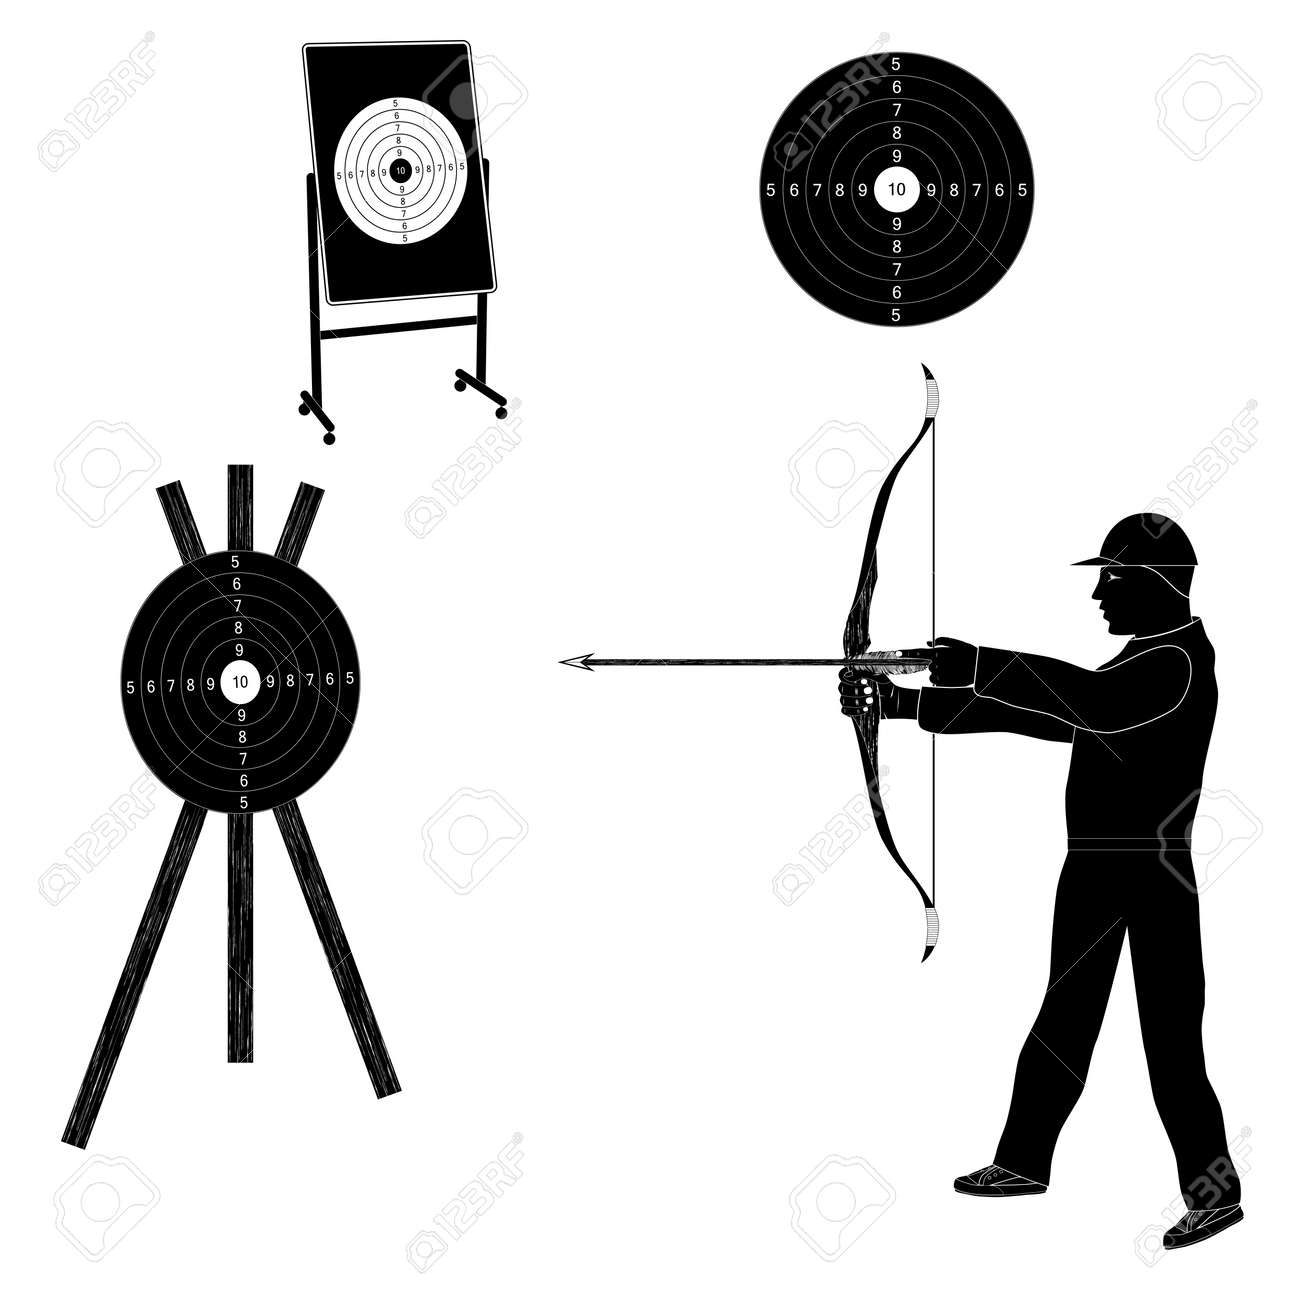 Shooter with bow and target. Black silhouette. Sports archery. - 124643211